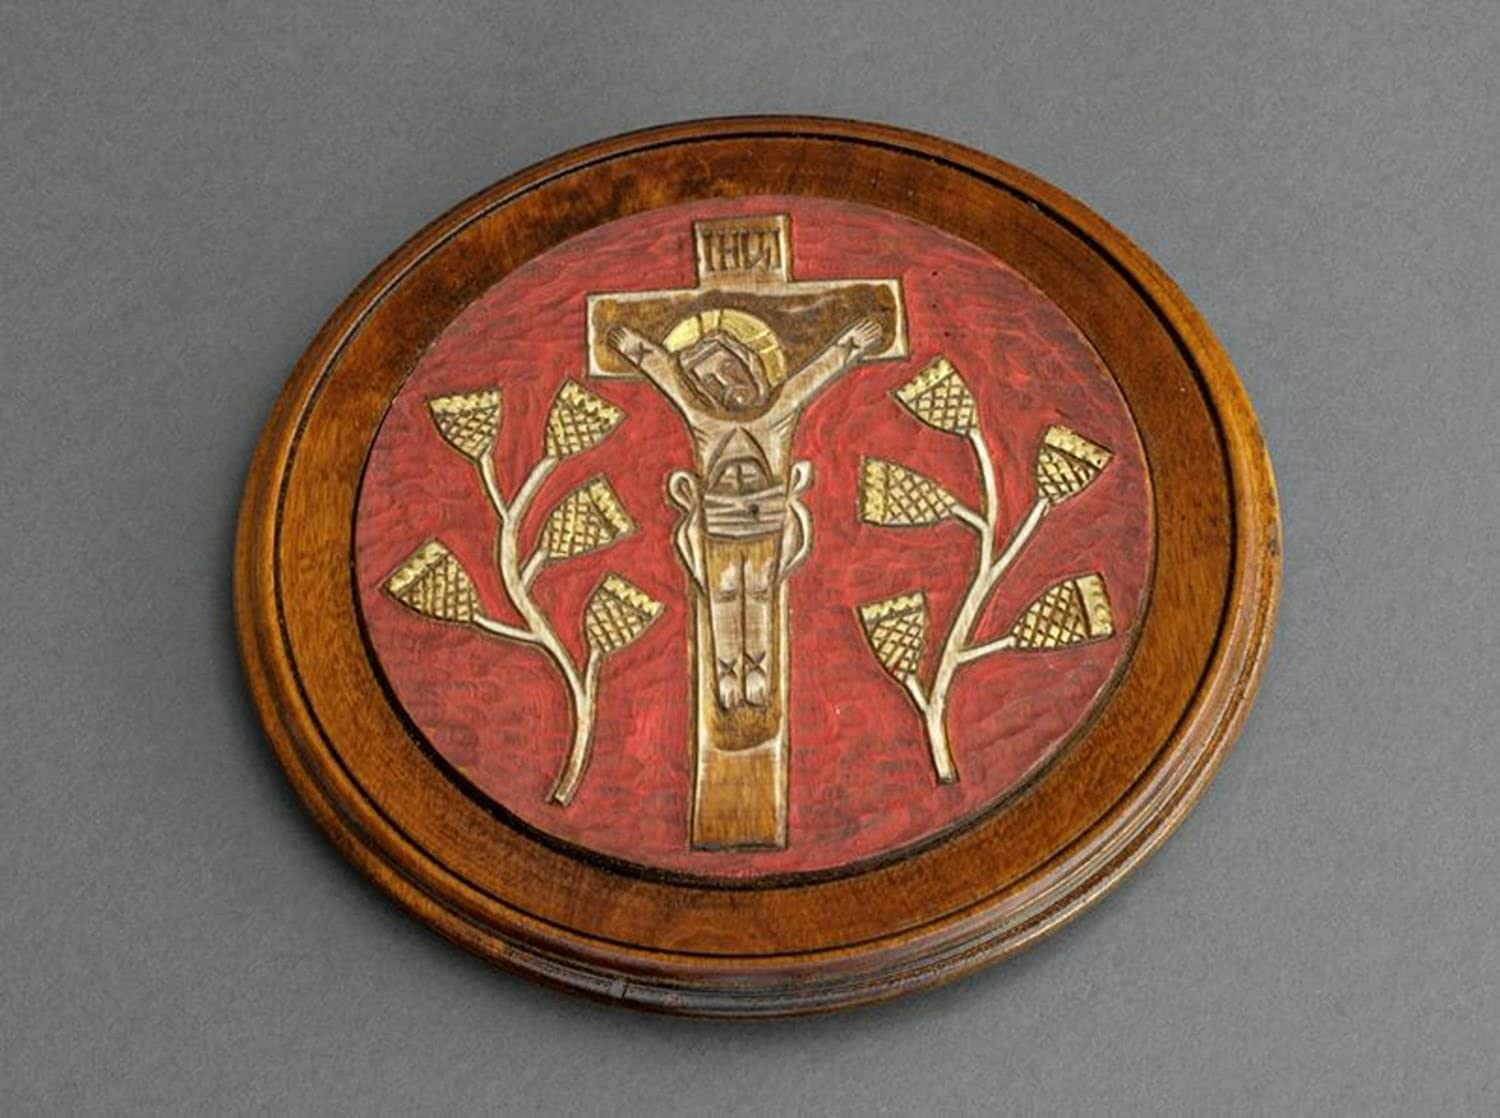 Decorative Plate With An Image Of Crucifix